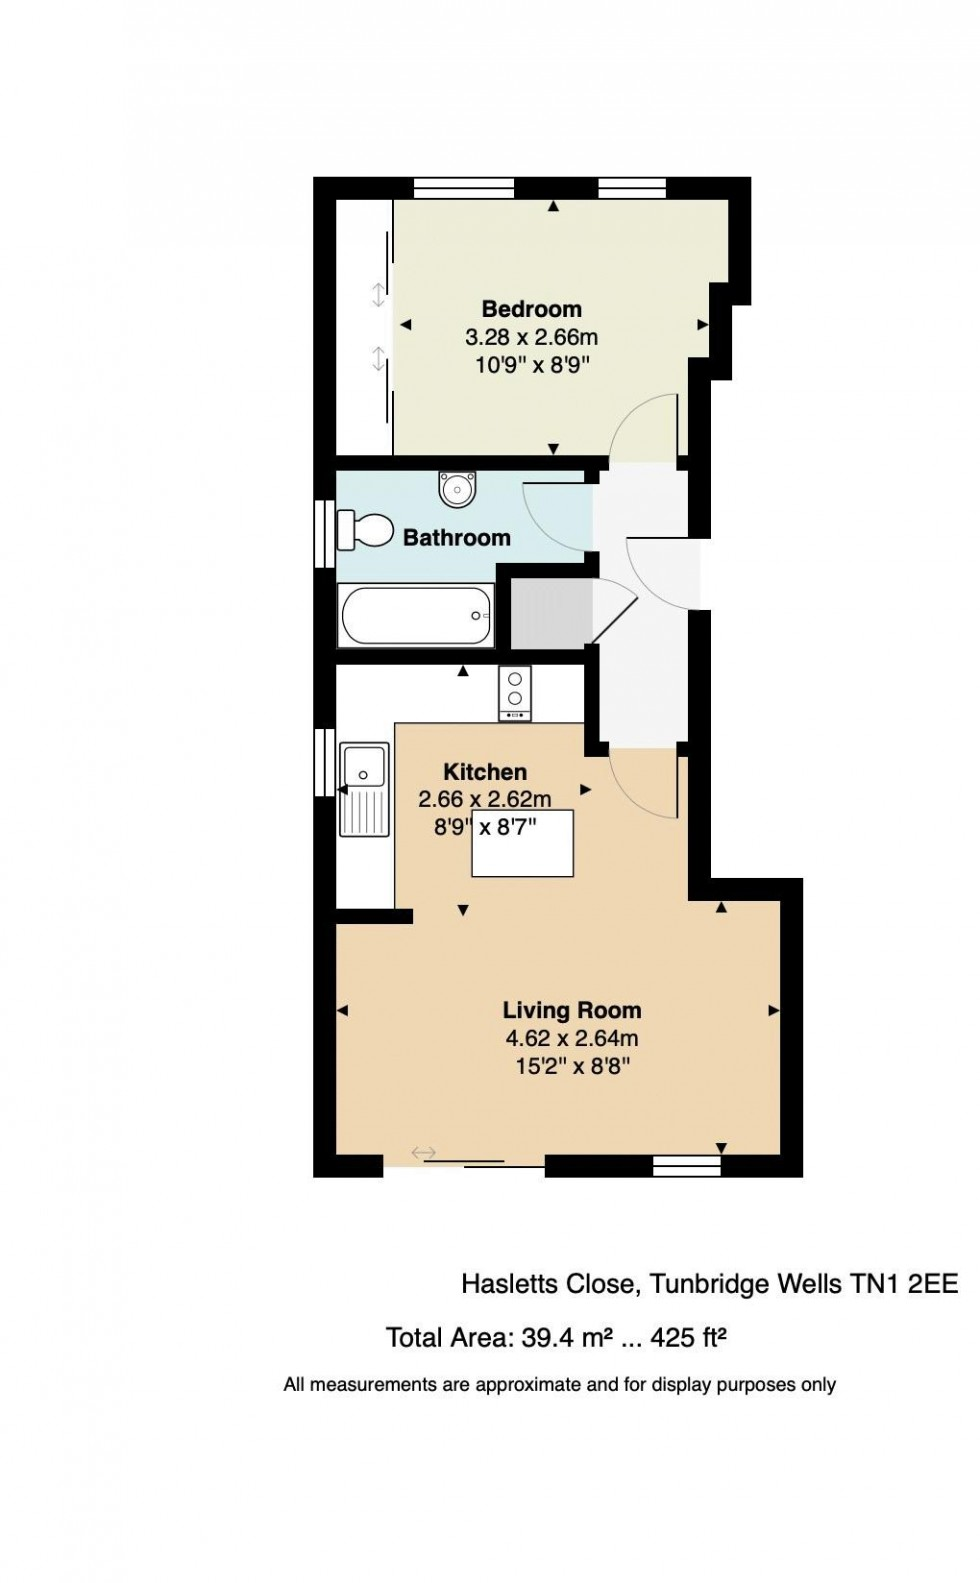 Floorplan for One Bedroom Ground Floor Flat with Parking, Hasletts Close, Tunbridge Wells